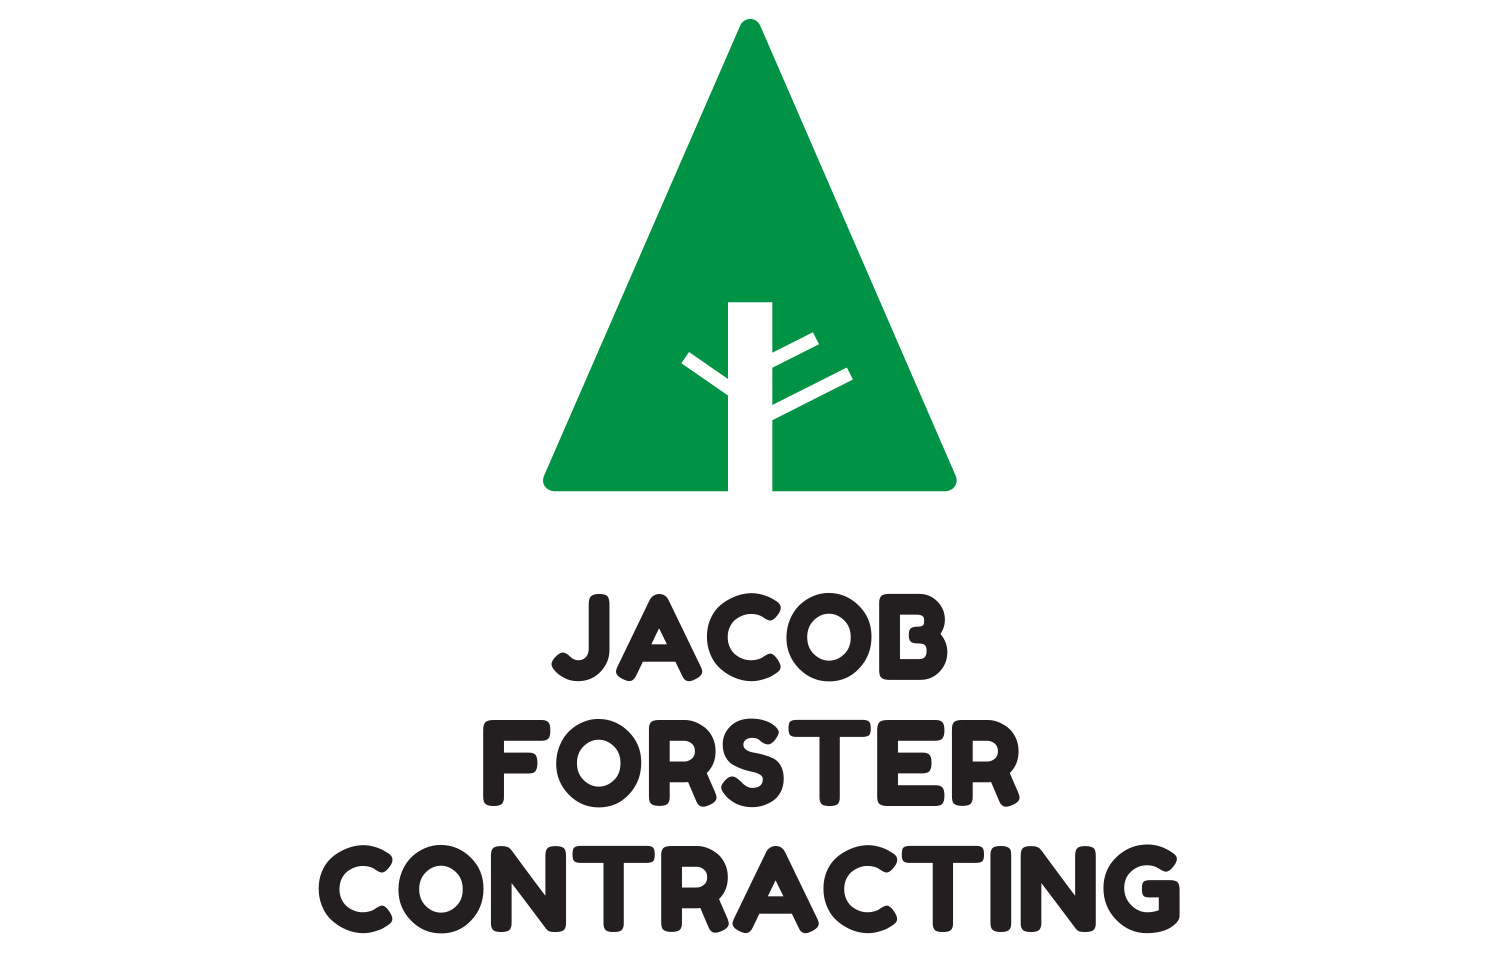 Jacob Forster Contracting